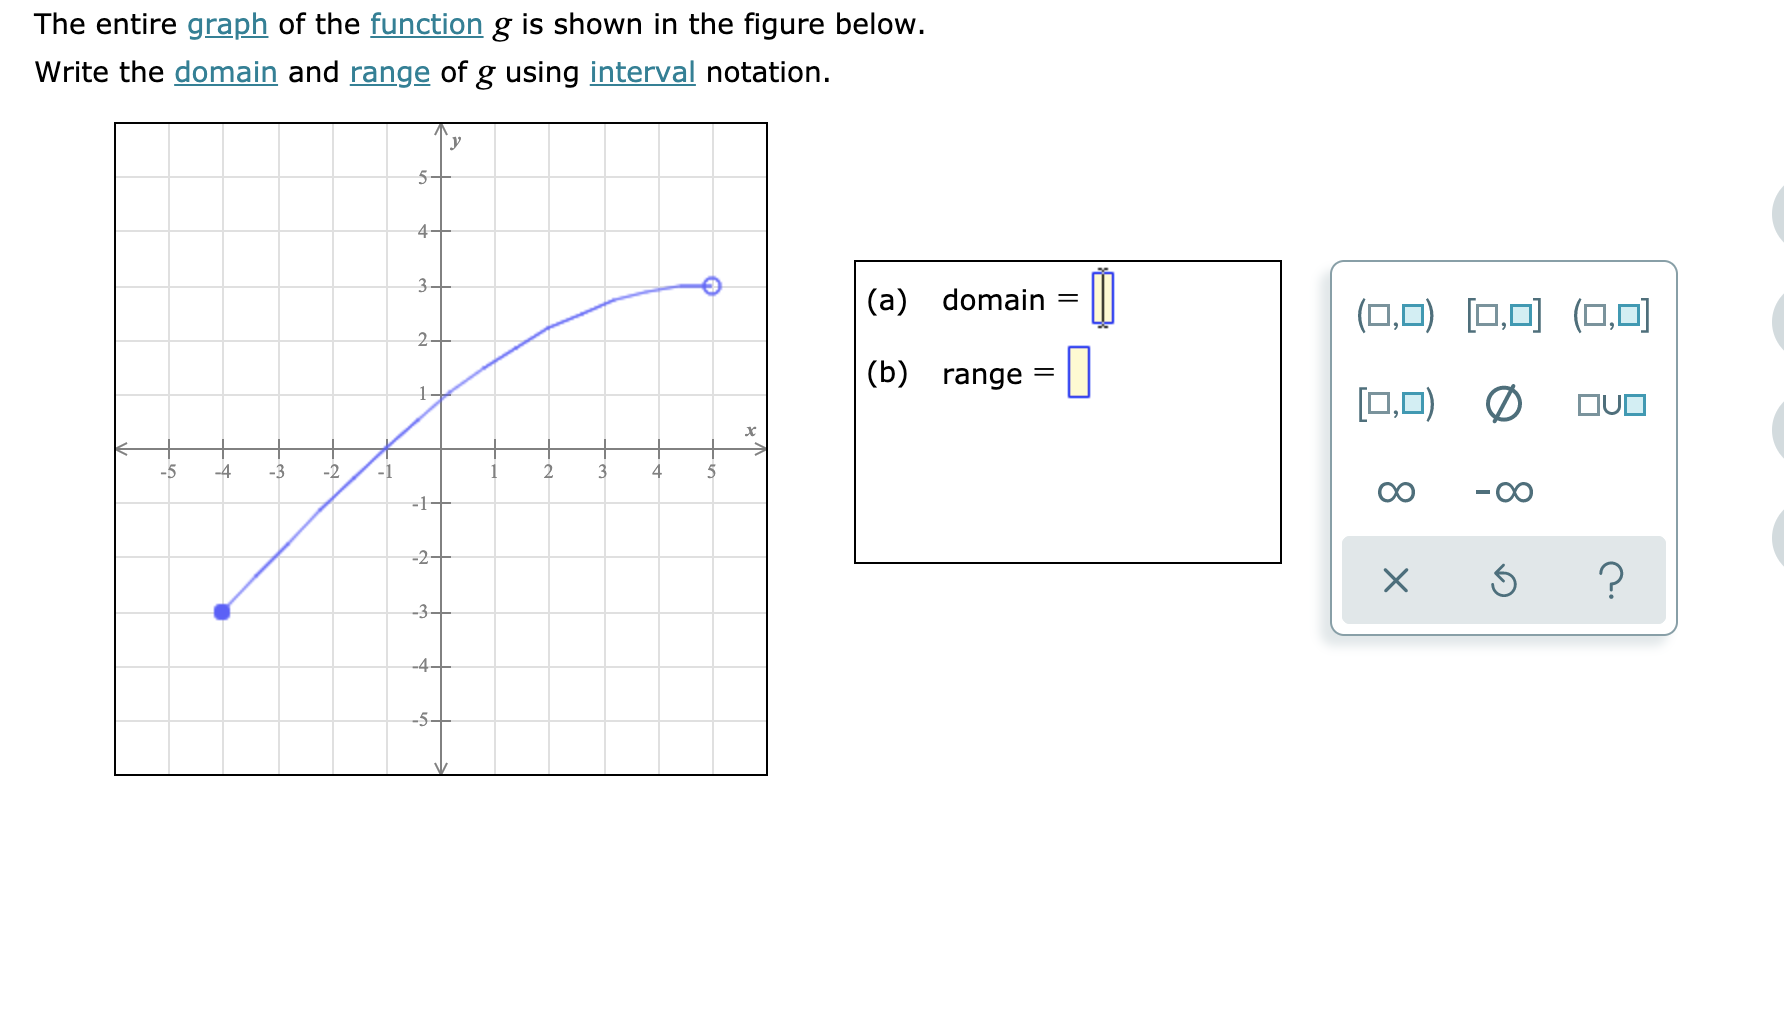 The entire graph of the function g is shown in the figure below. Write the domain and range of g using interval notation 4+ 3- (a) domain (O (, 2 (b) range 1 OUD -4 4 -2 -1-- -2- ? X 3 4 -5